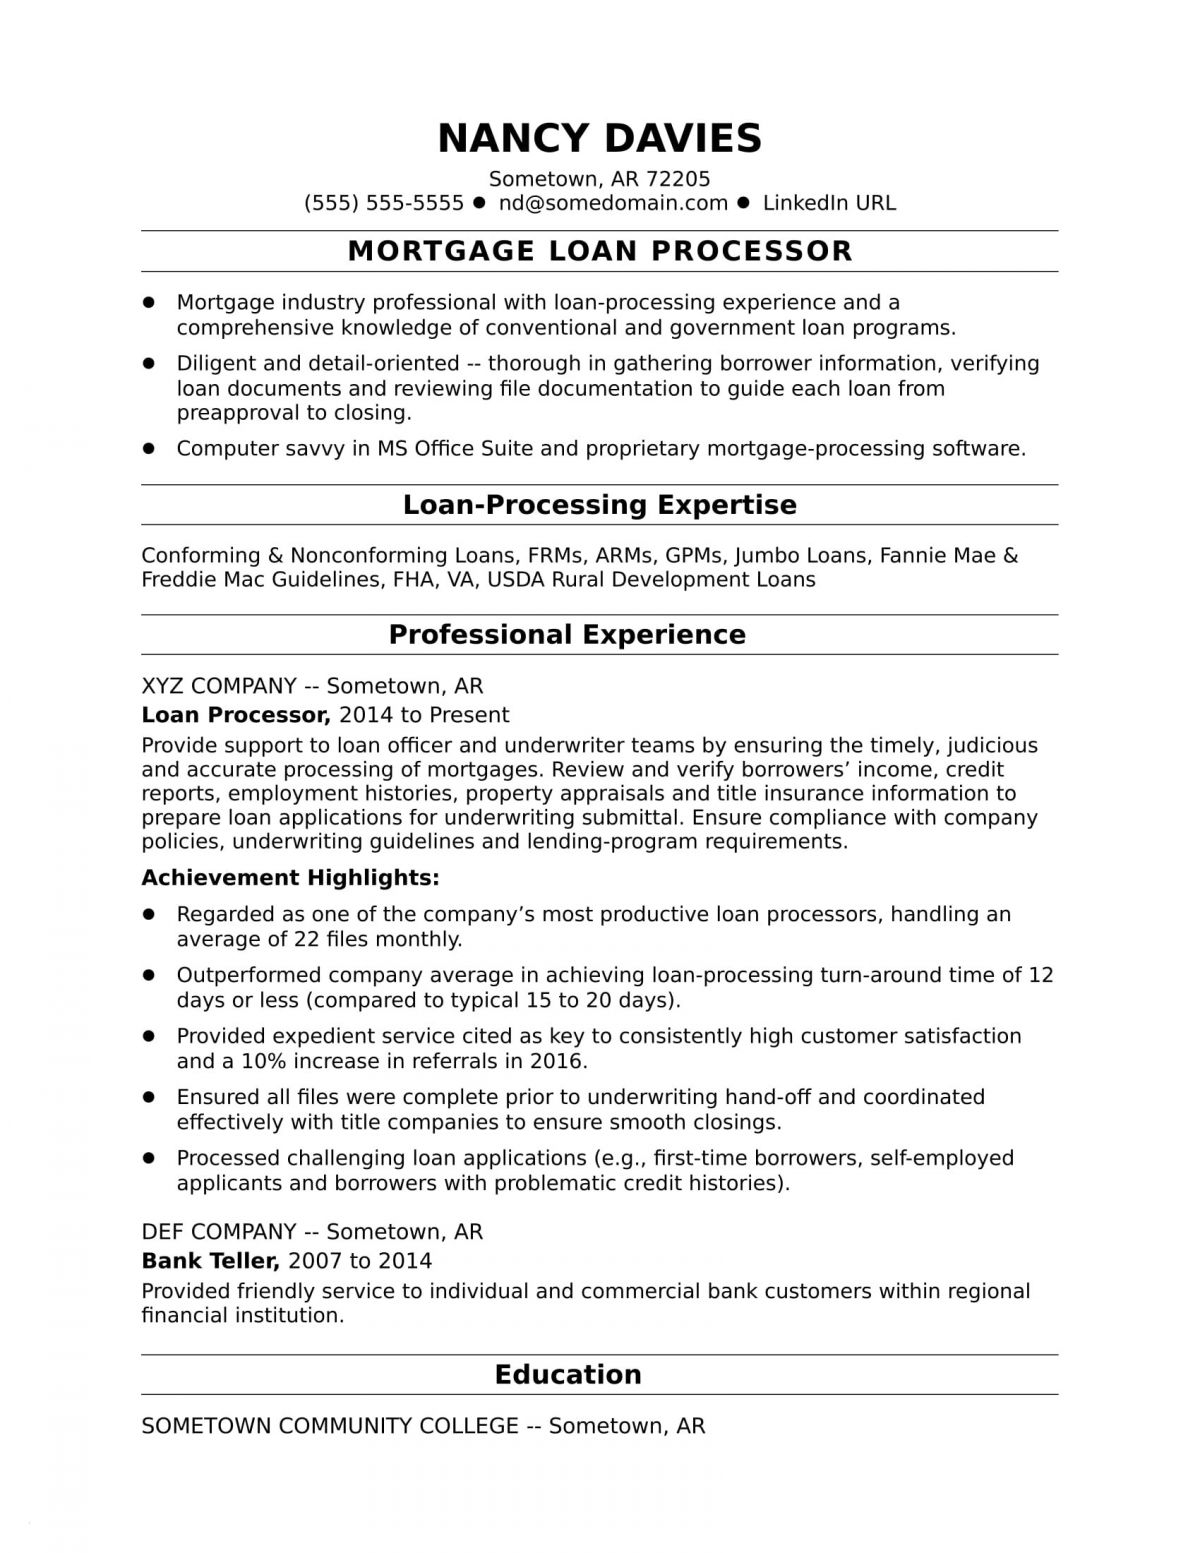 Loan Processor Resume - Loan Processor Resume Example Paragraphrewriter